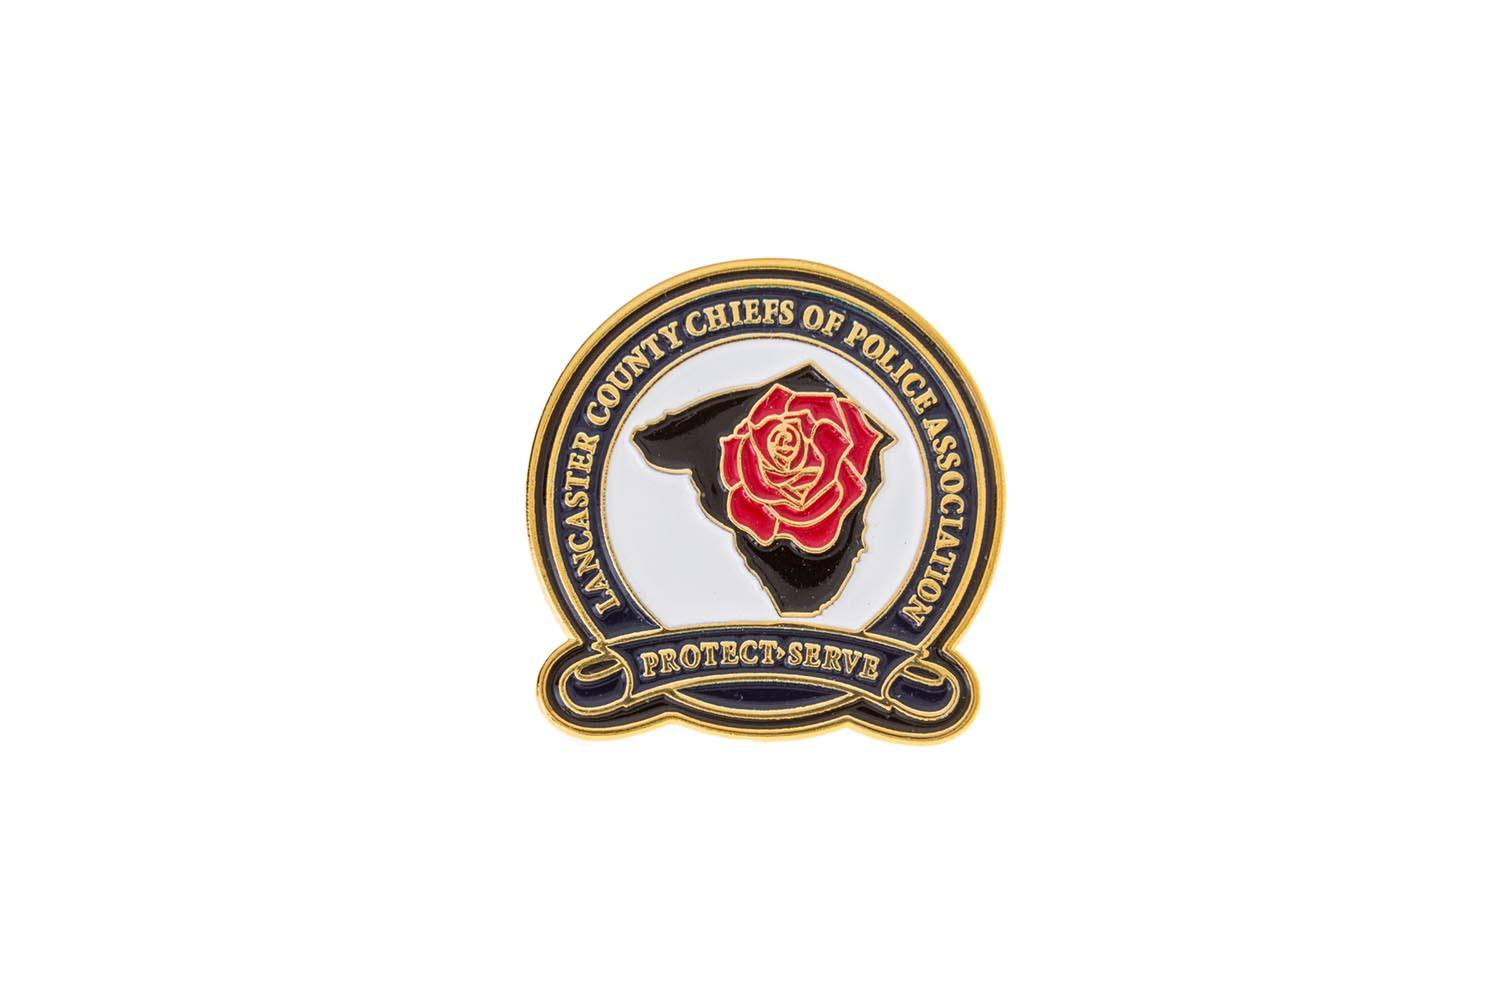 Police lapel pins